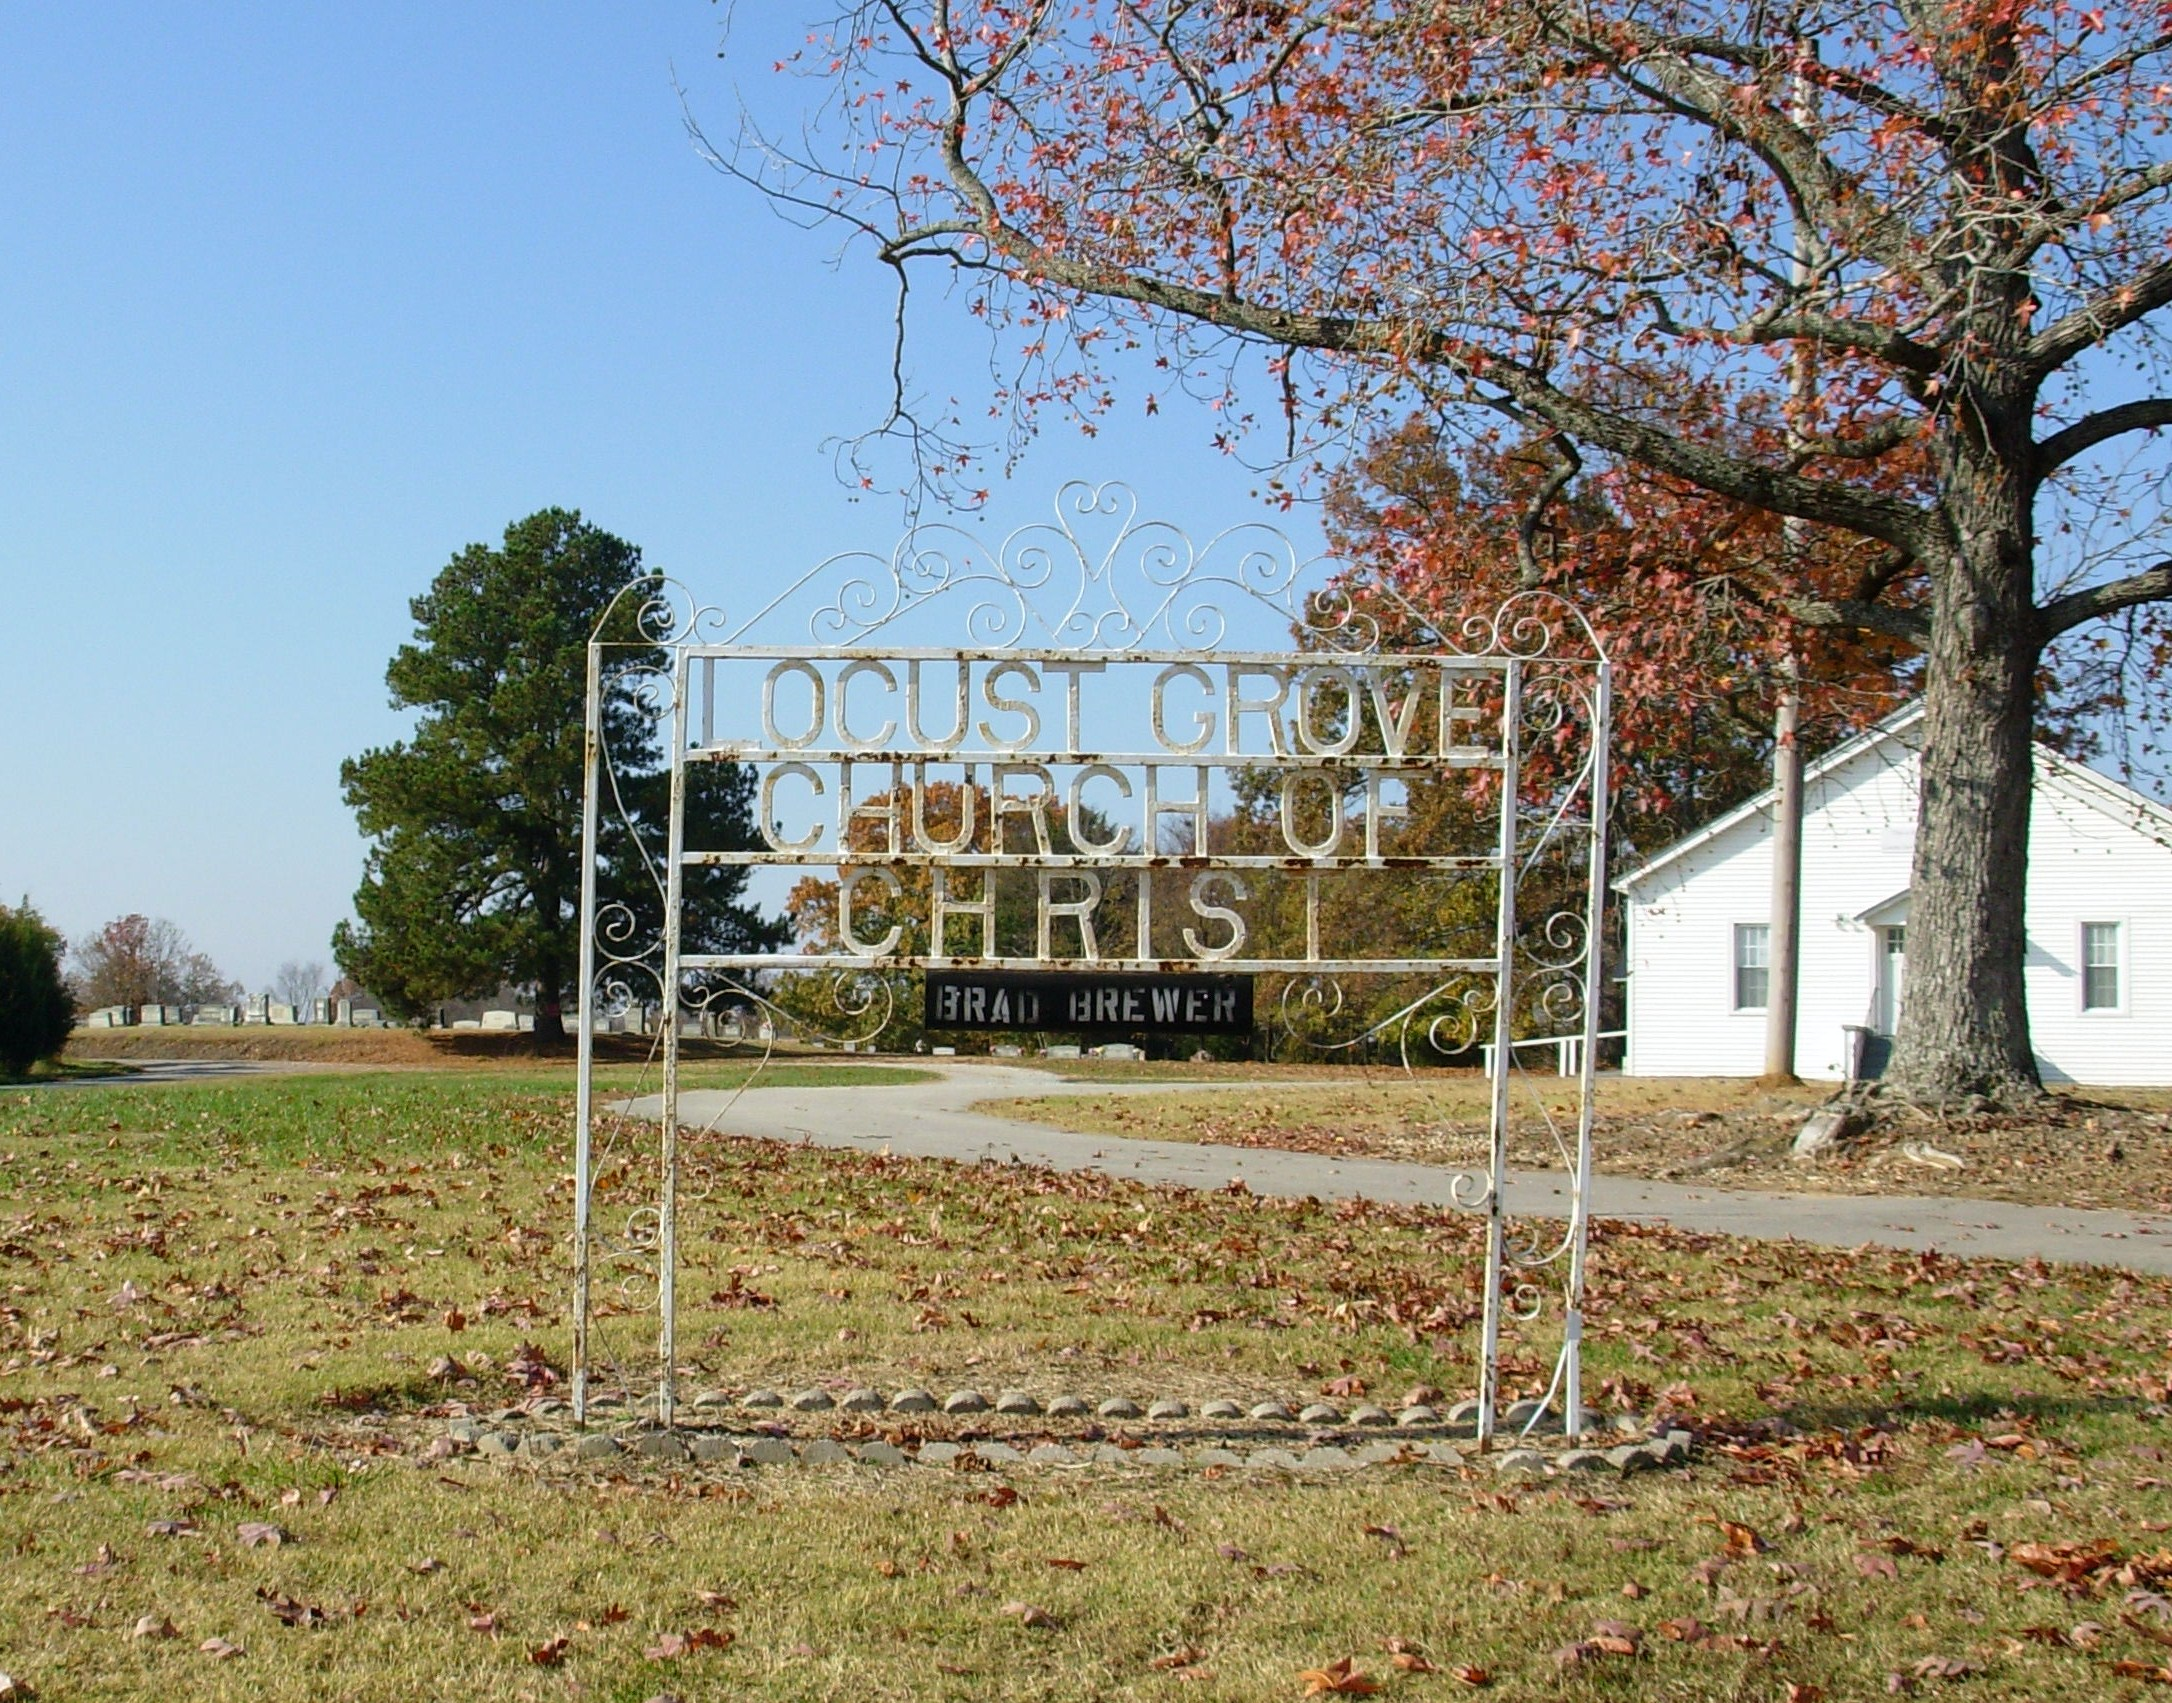 Locust Grove Church of Christ Cemetery